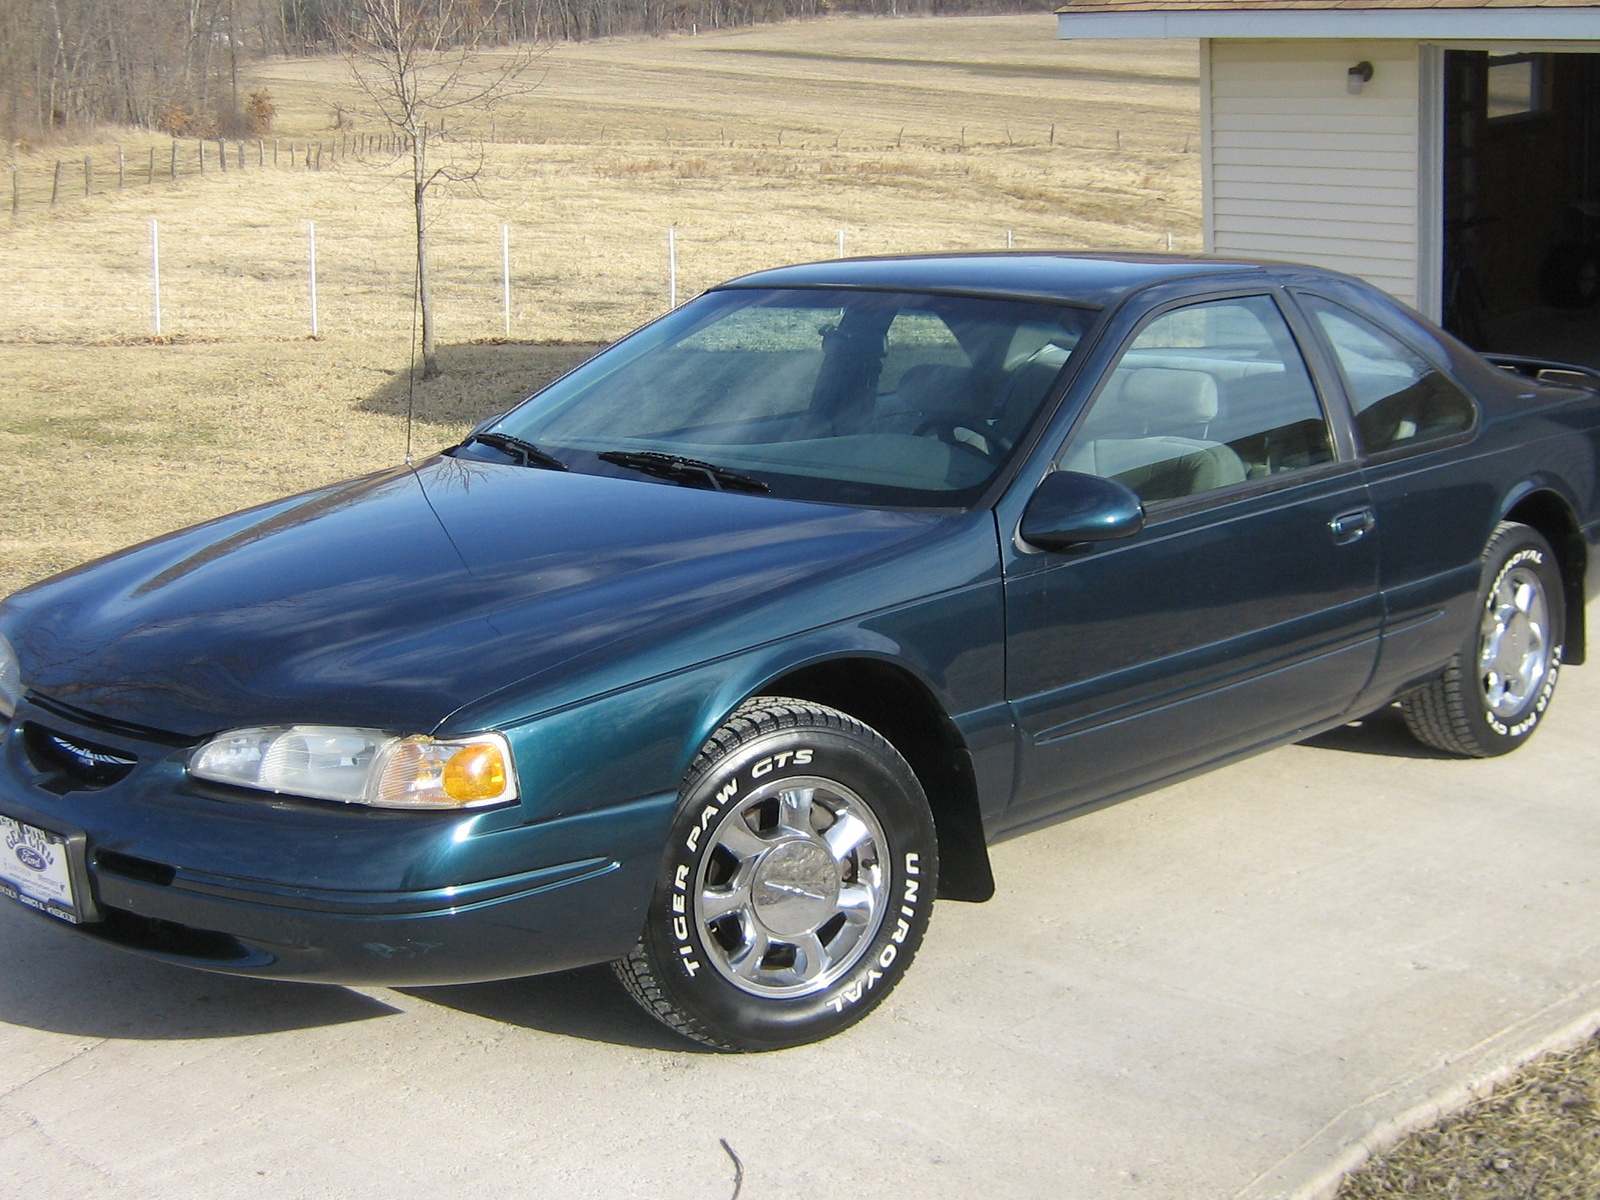 1996 Ford Thunderbird LX, 1996 Ford Thunderbird 2 Dr LX Coupe picture ...